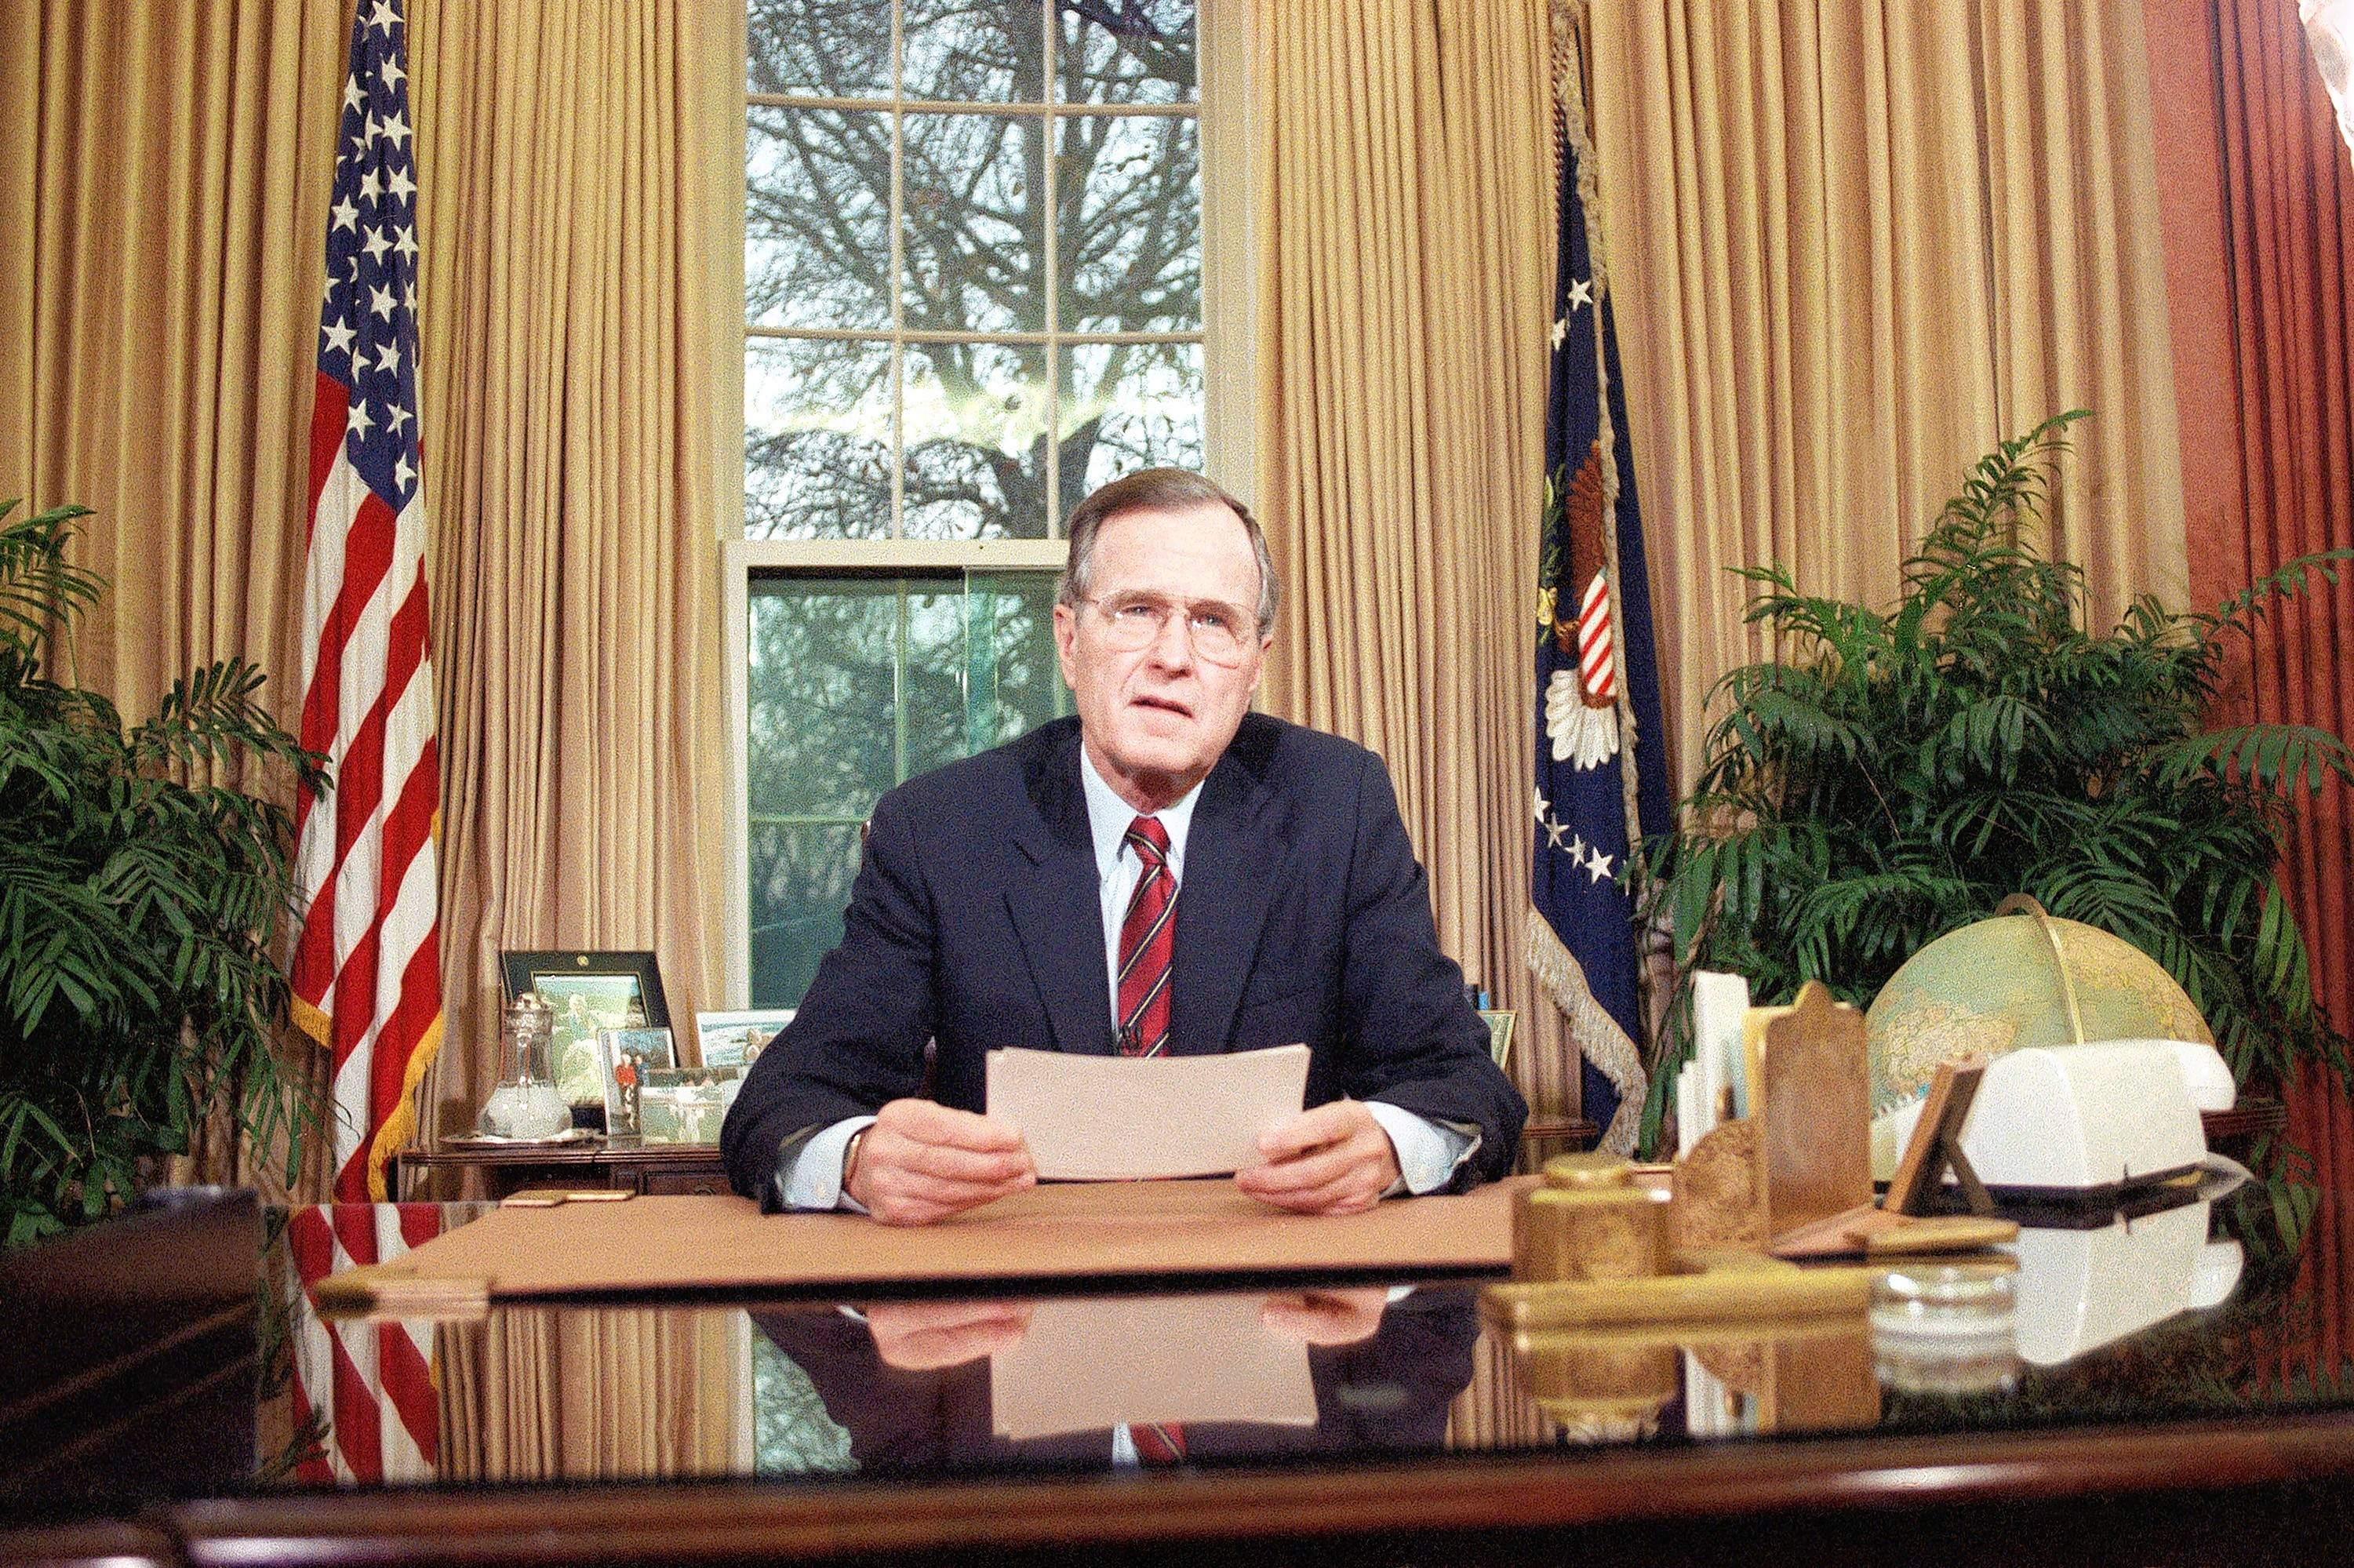 President Bush addresses the nation on television from the Oval Office in Washington on Dec. 20, 1989, as he explains his decision to deploy American troops to Panama. Bush said some Americans were among the death and that Panamanian leader Gen. Manuel Antonio Noriega was in hiding.